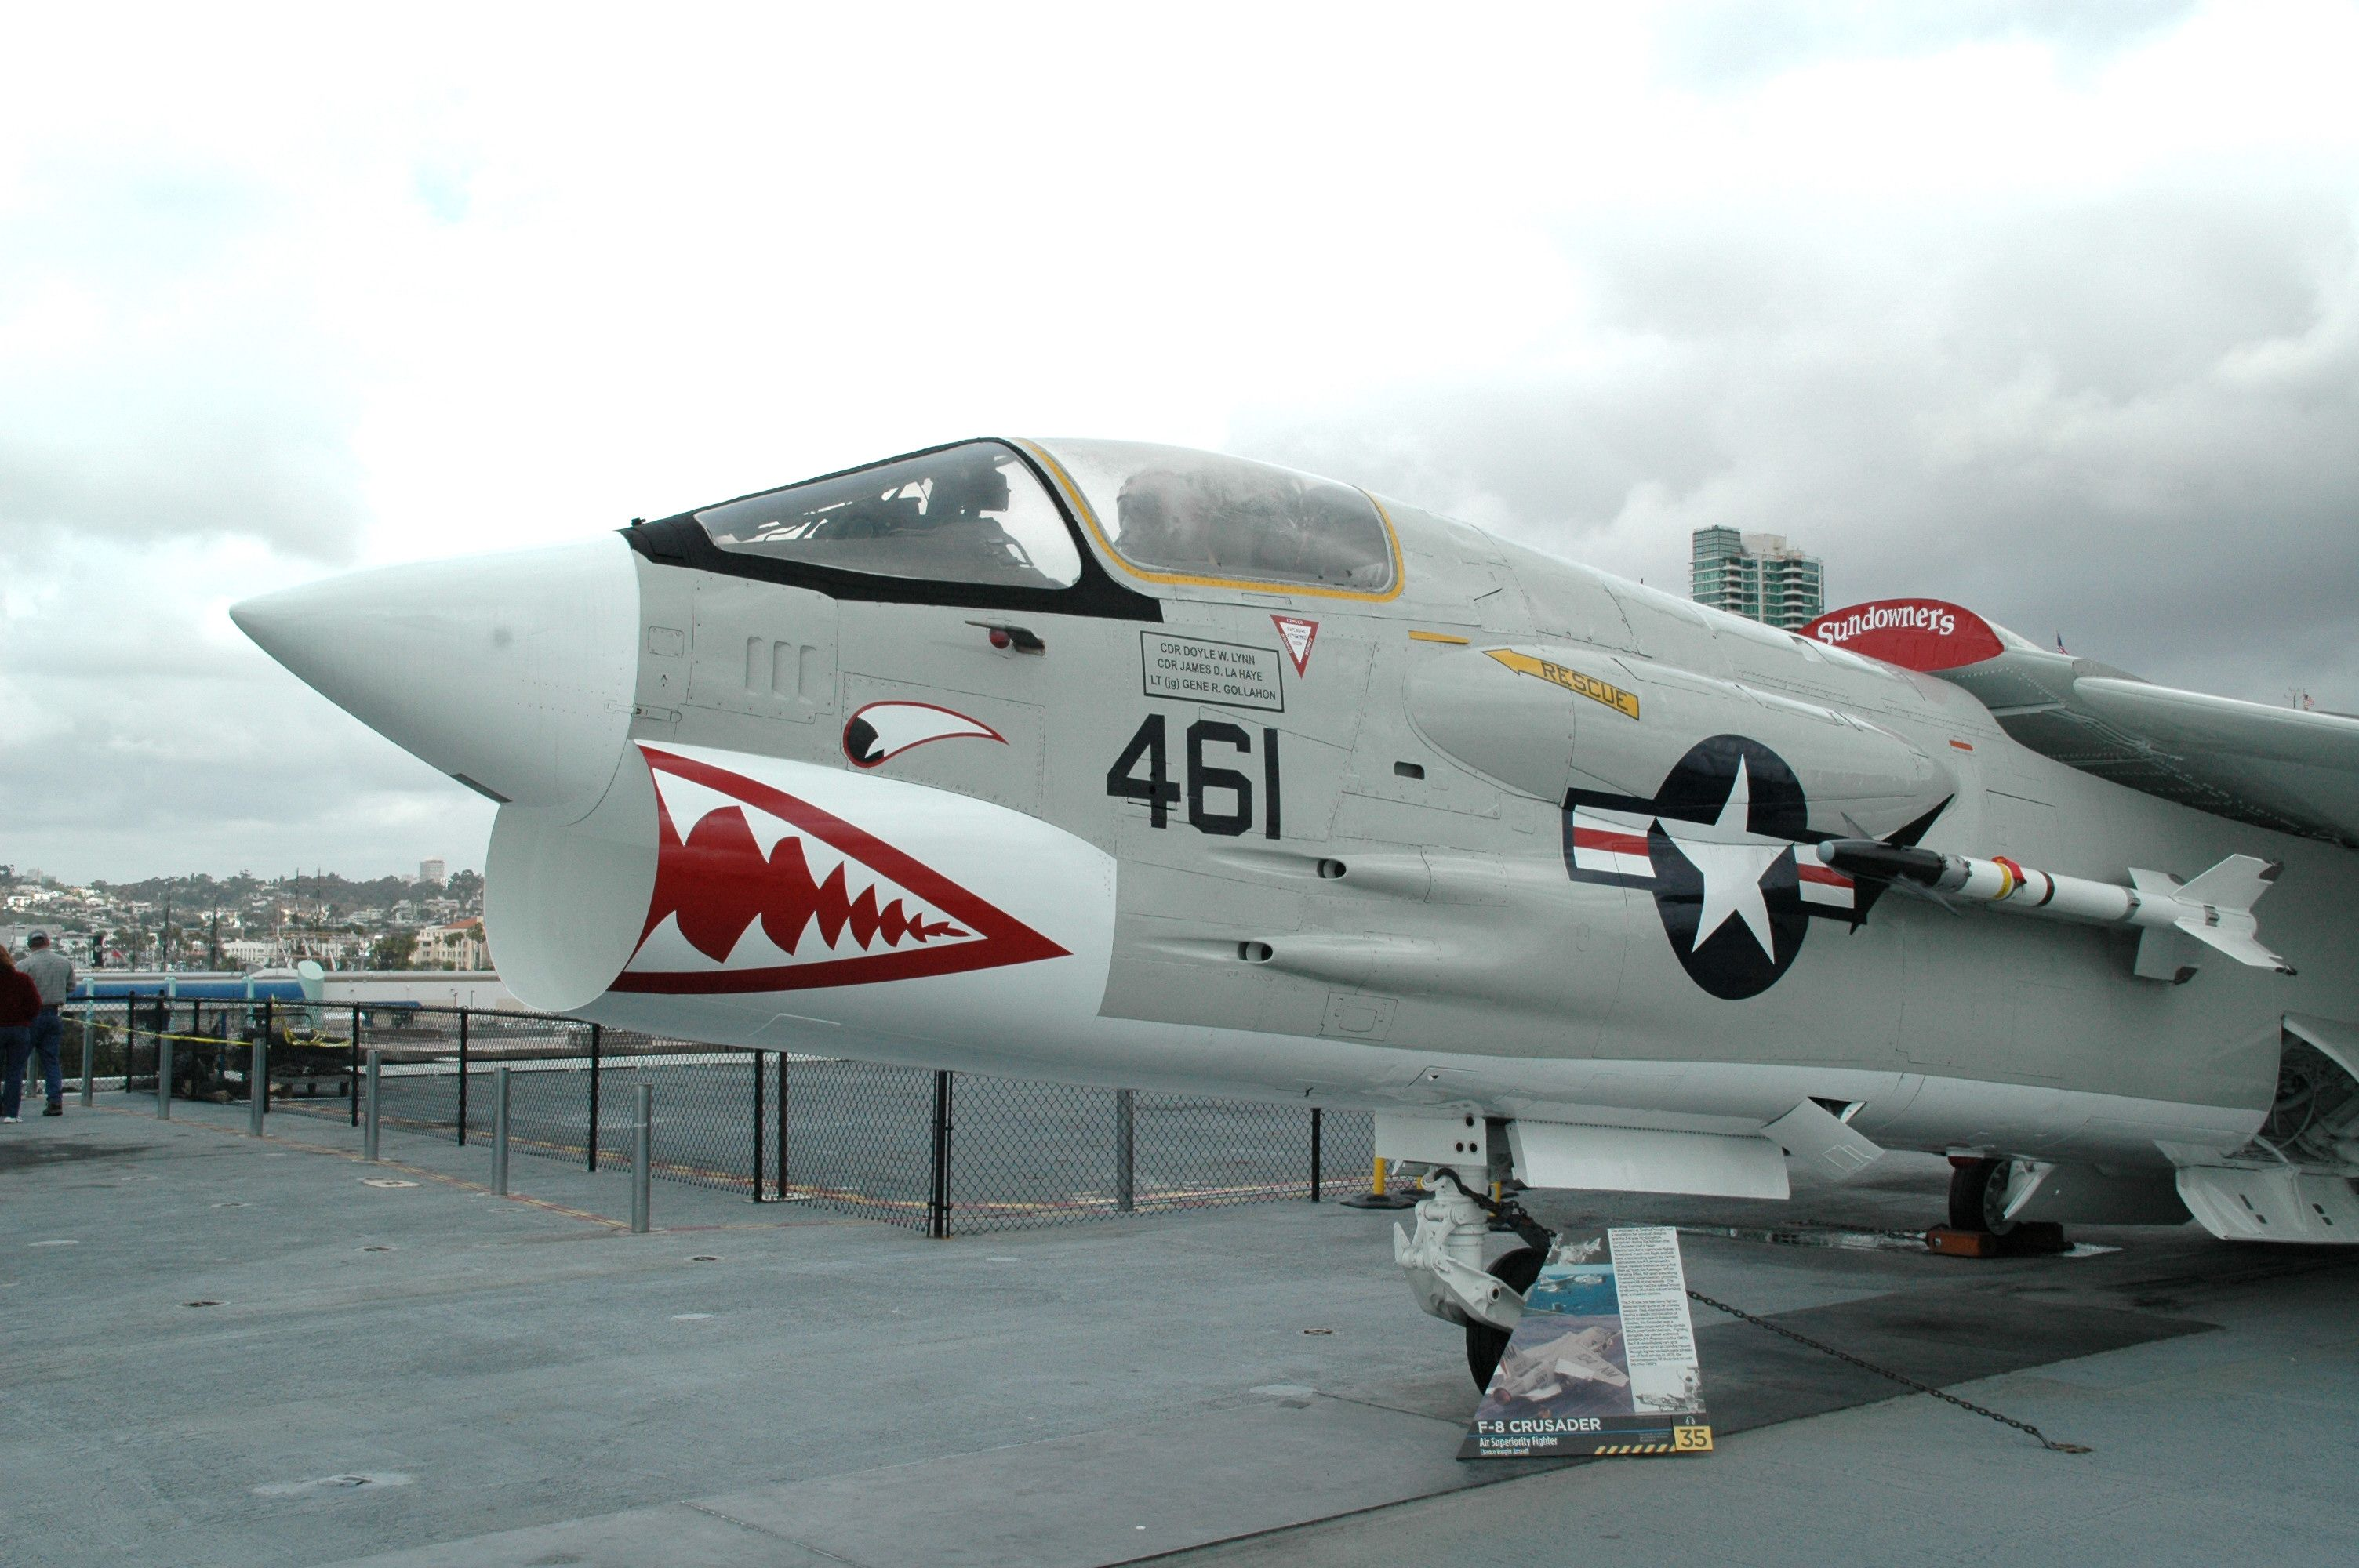 ChanceVought Crusader aboard the USS Midway at San Diego